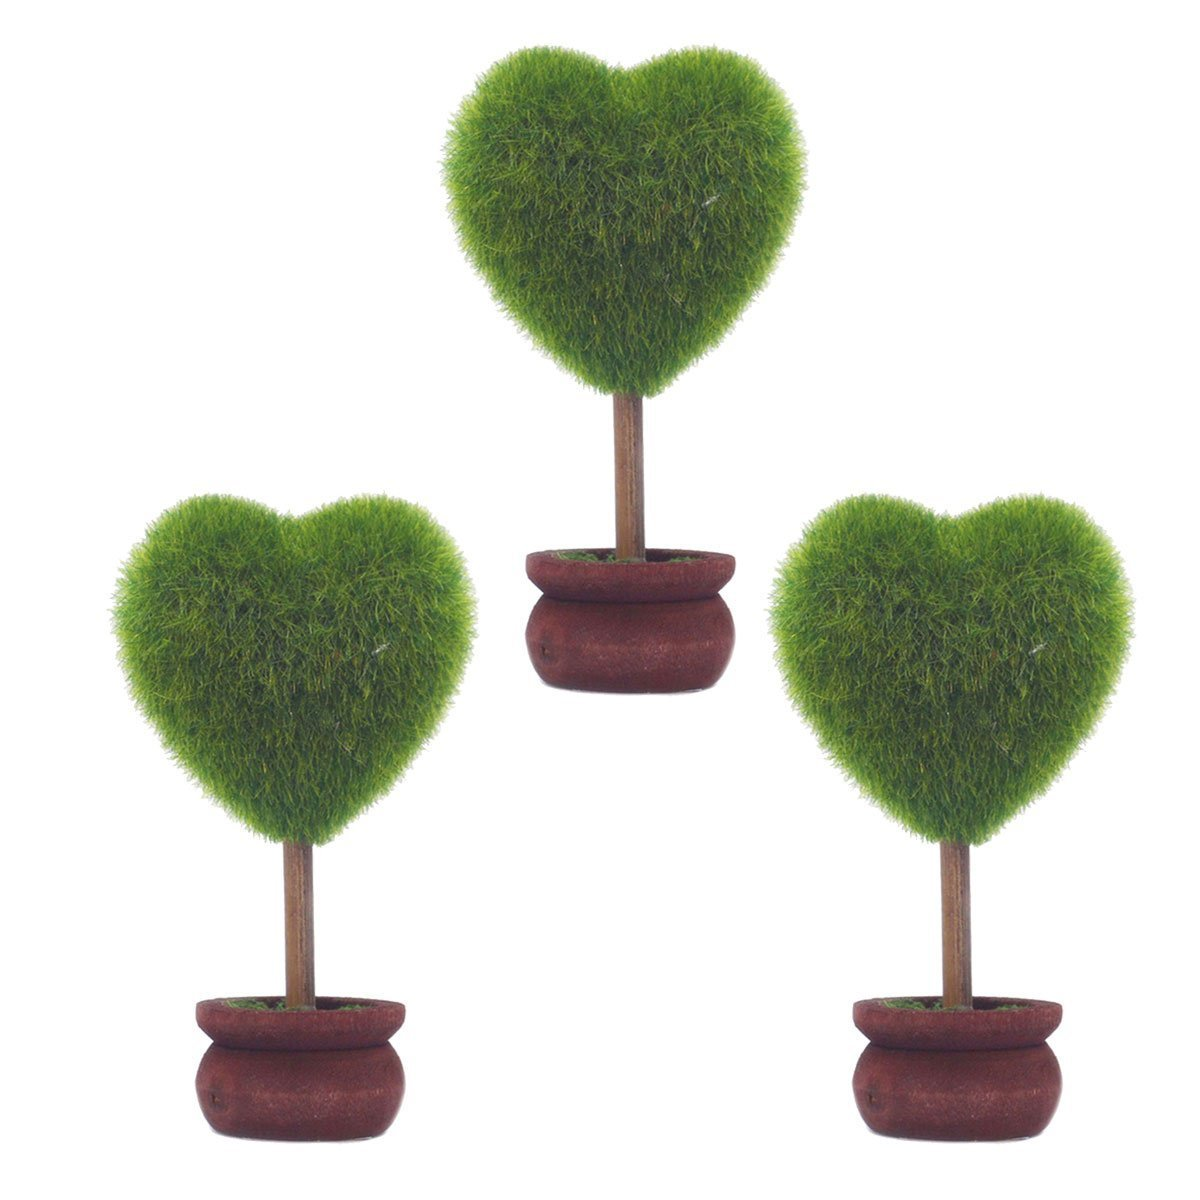 St 3 Styles Can Choose- Home Decoration Black Solid Wood Flower Pots Artificial Plants Topiary Tree Mini Flocking Crafts (NO.3 Green)